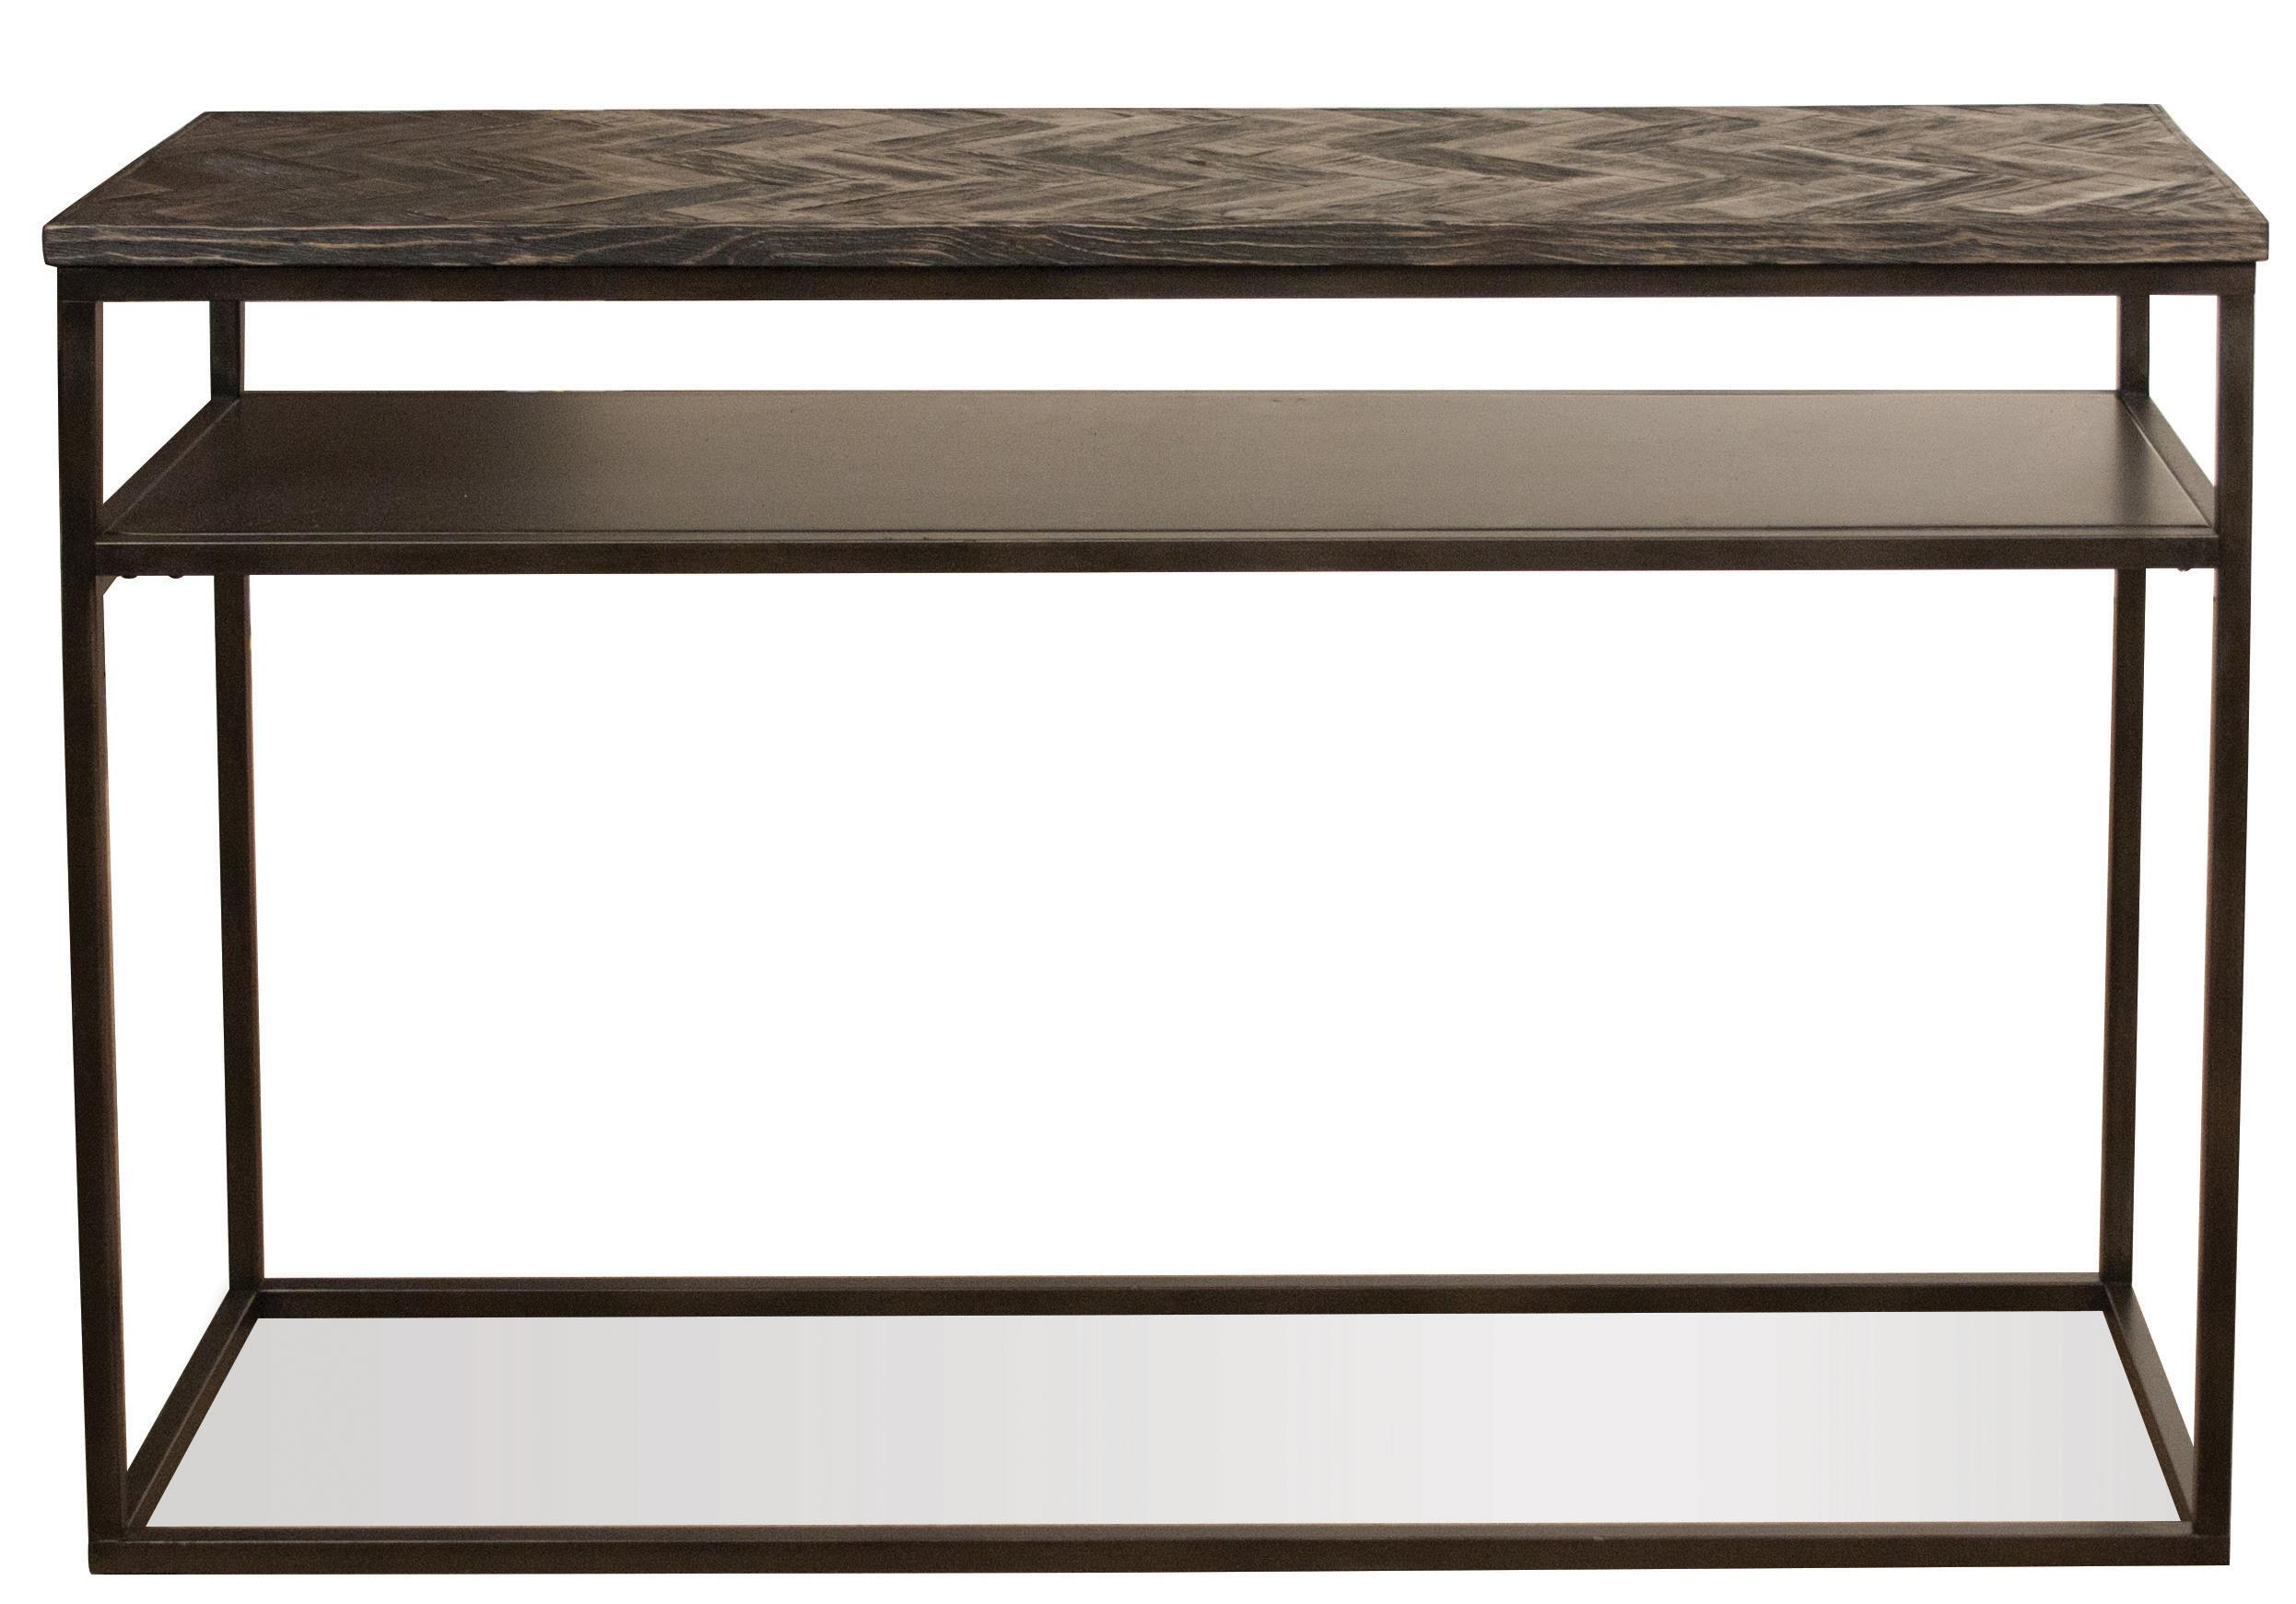 Riverside Furniture Chevron Sofa Table - Item Number: 73115